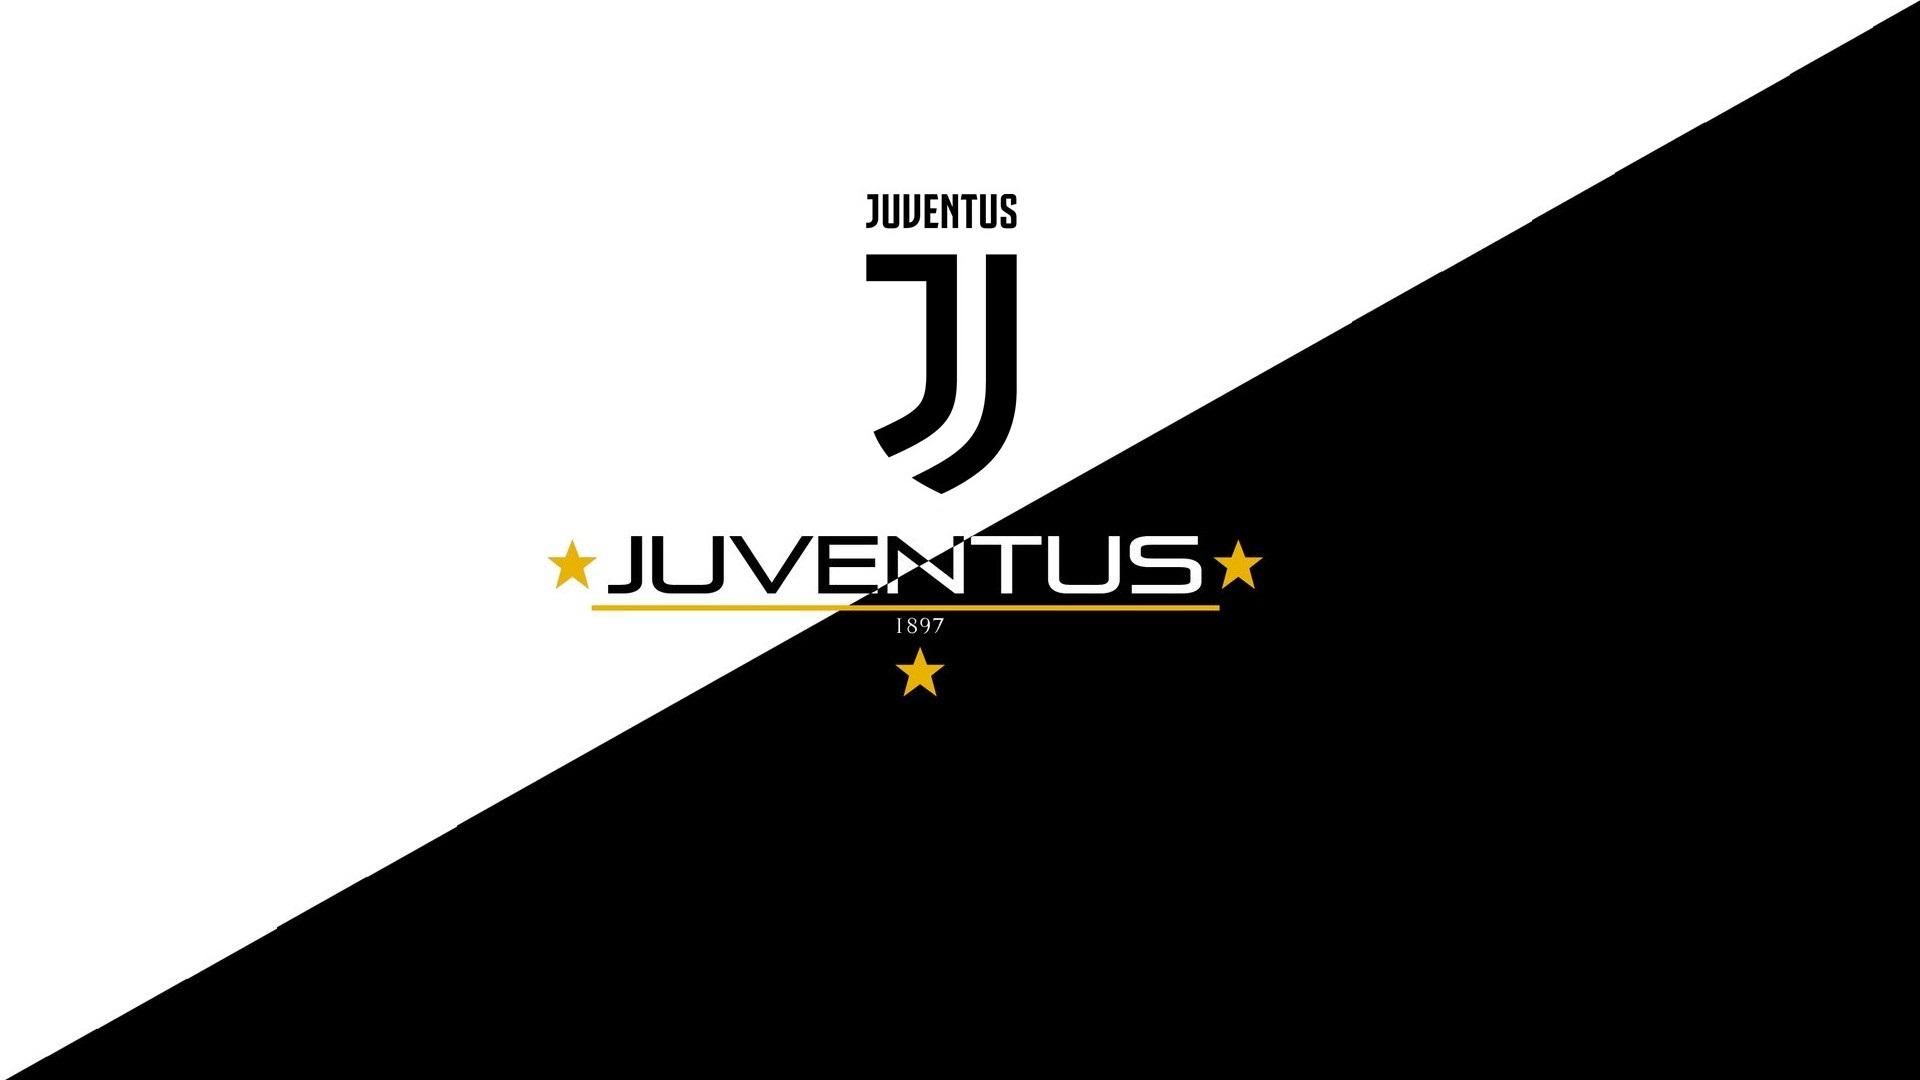 Top Juventus Wallpaper 4k 2019 2020 Paperbola